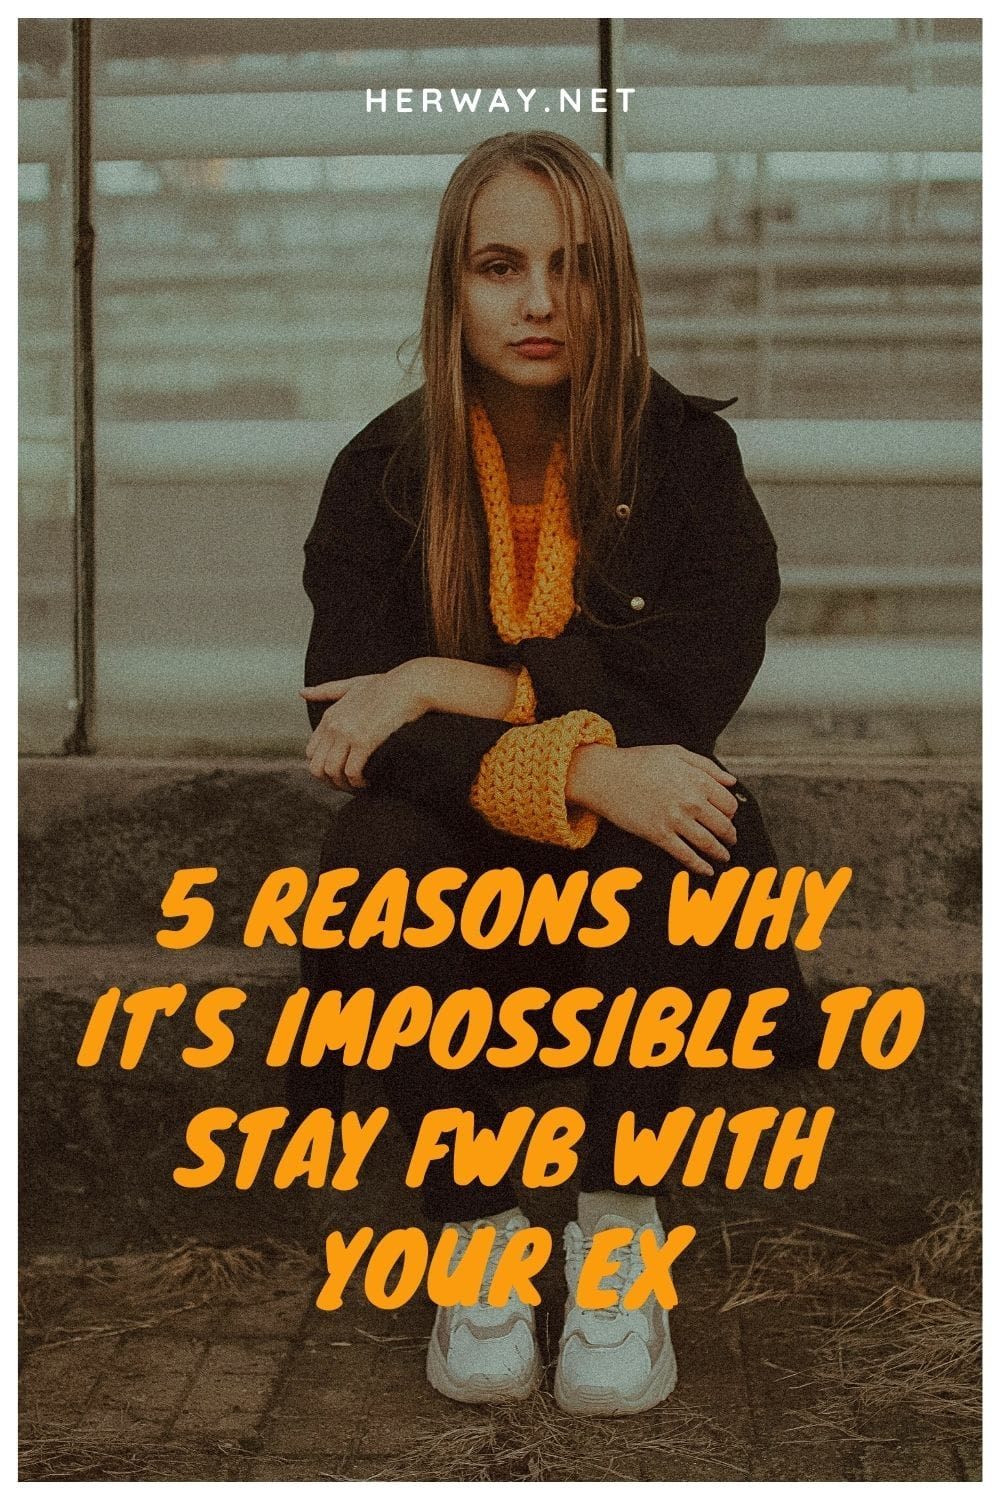 5 Reasons Why It's Impossible To Stay FWB With Your EX